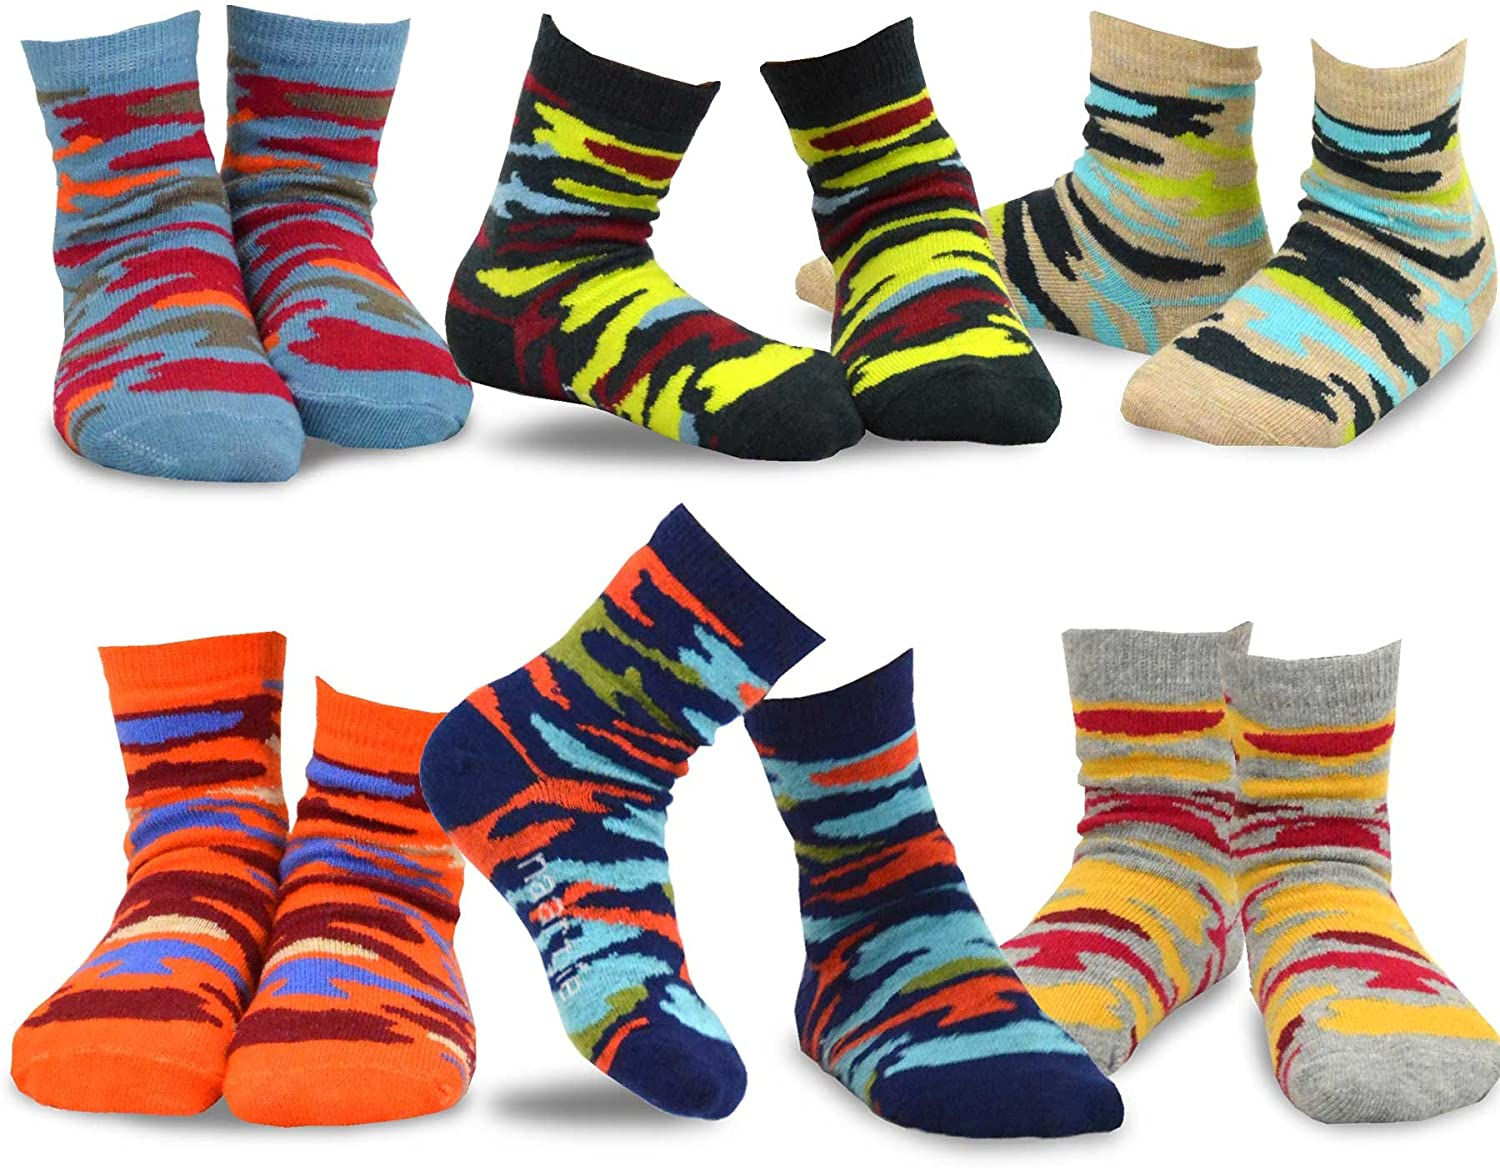 TeeHee Little Boys and Toddler Casual Sports Novelty Cotton Crew Socks 18 Pair Pack Gift Box: Clothing, Shoes & Jewelry